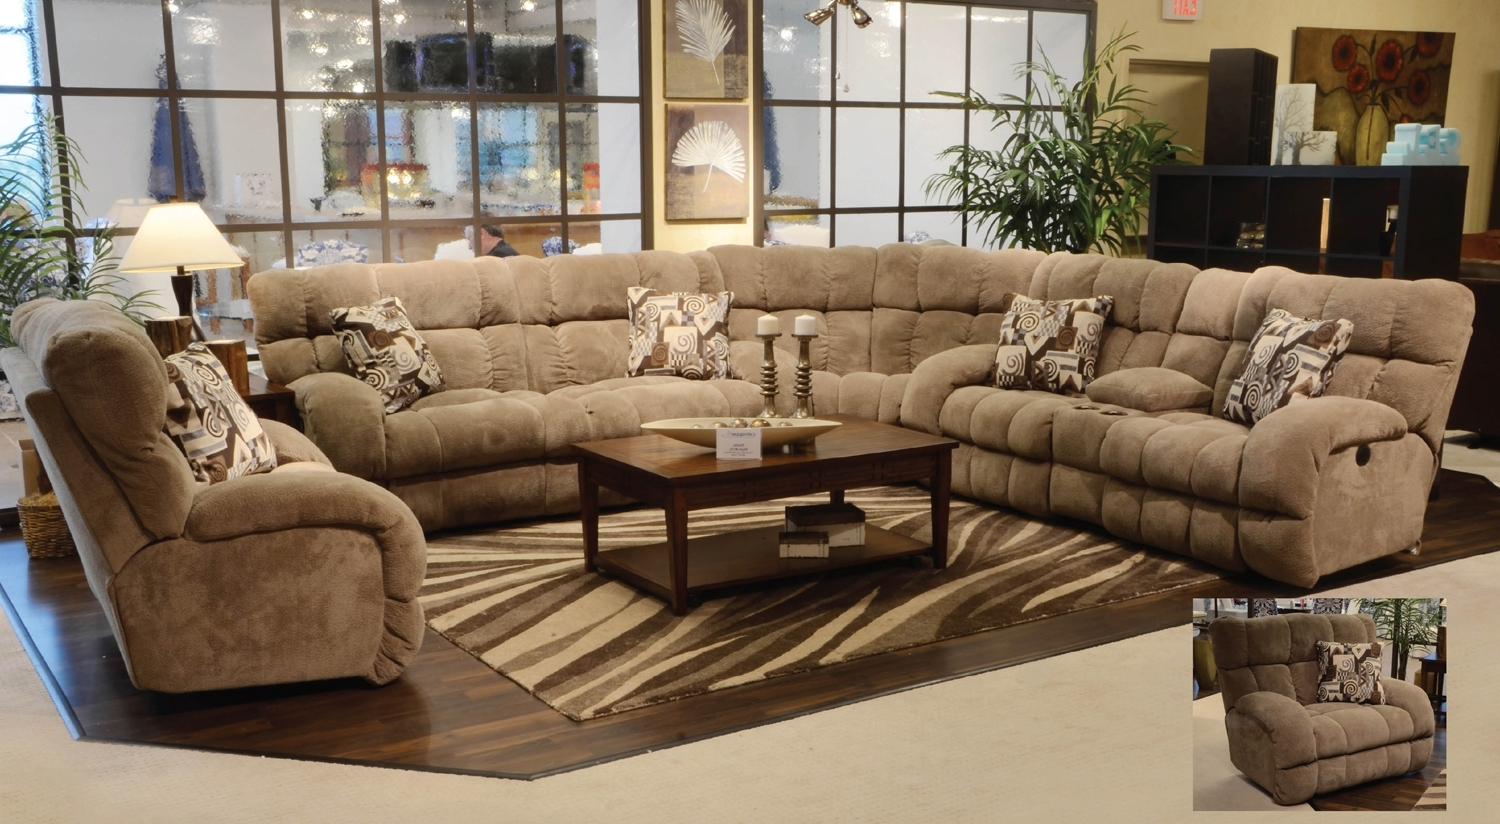 Current Sectional Sofas In Toronto For Sofa : Oversized Sectional Sofas Toronto Oversized Plush Sectional (View 4 of 15)